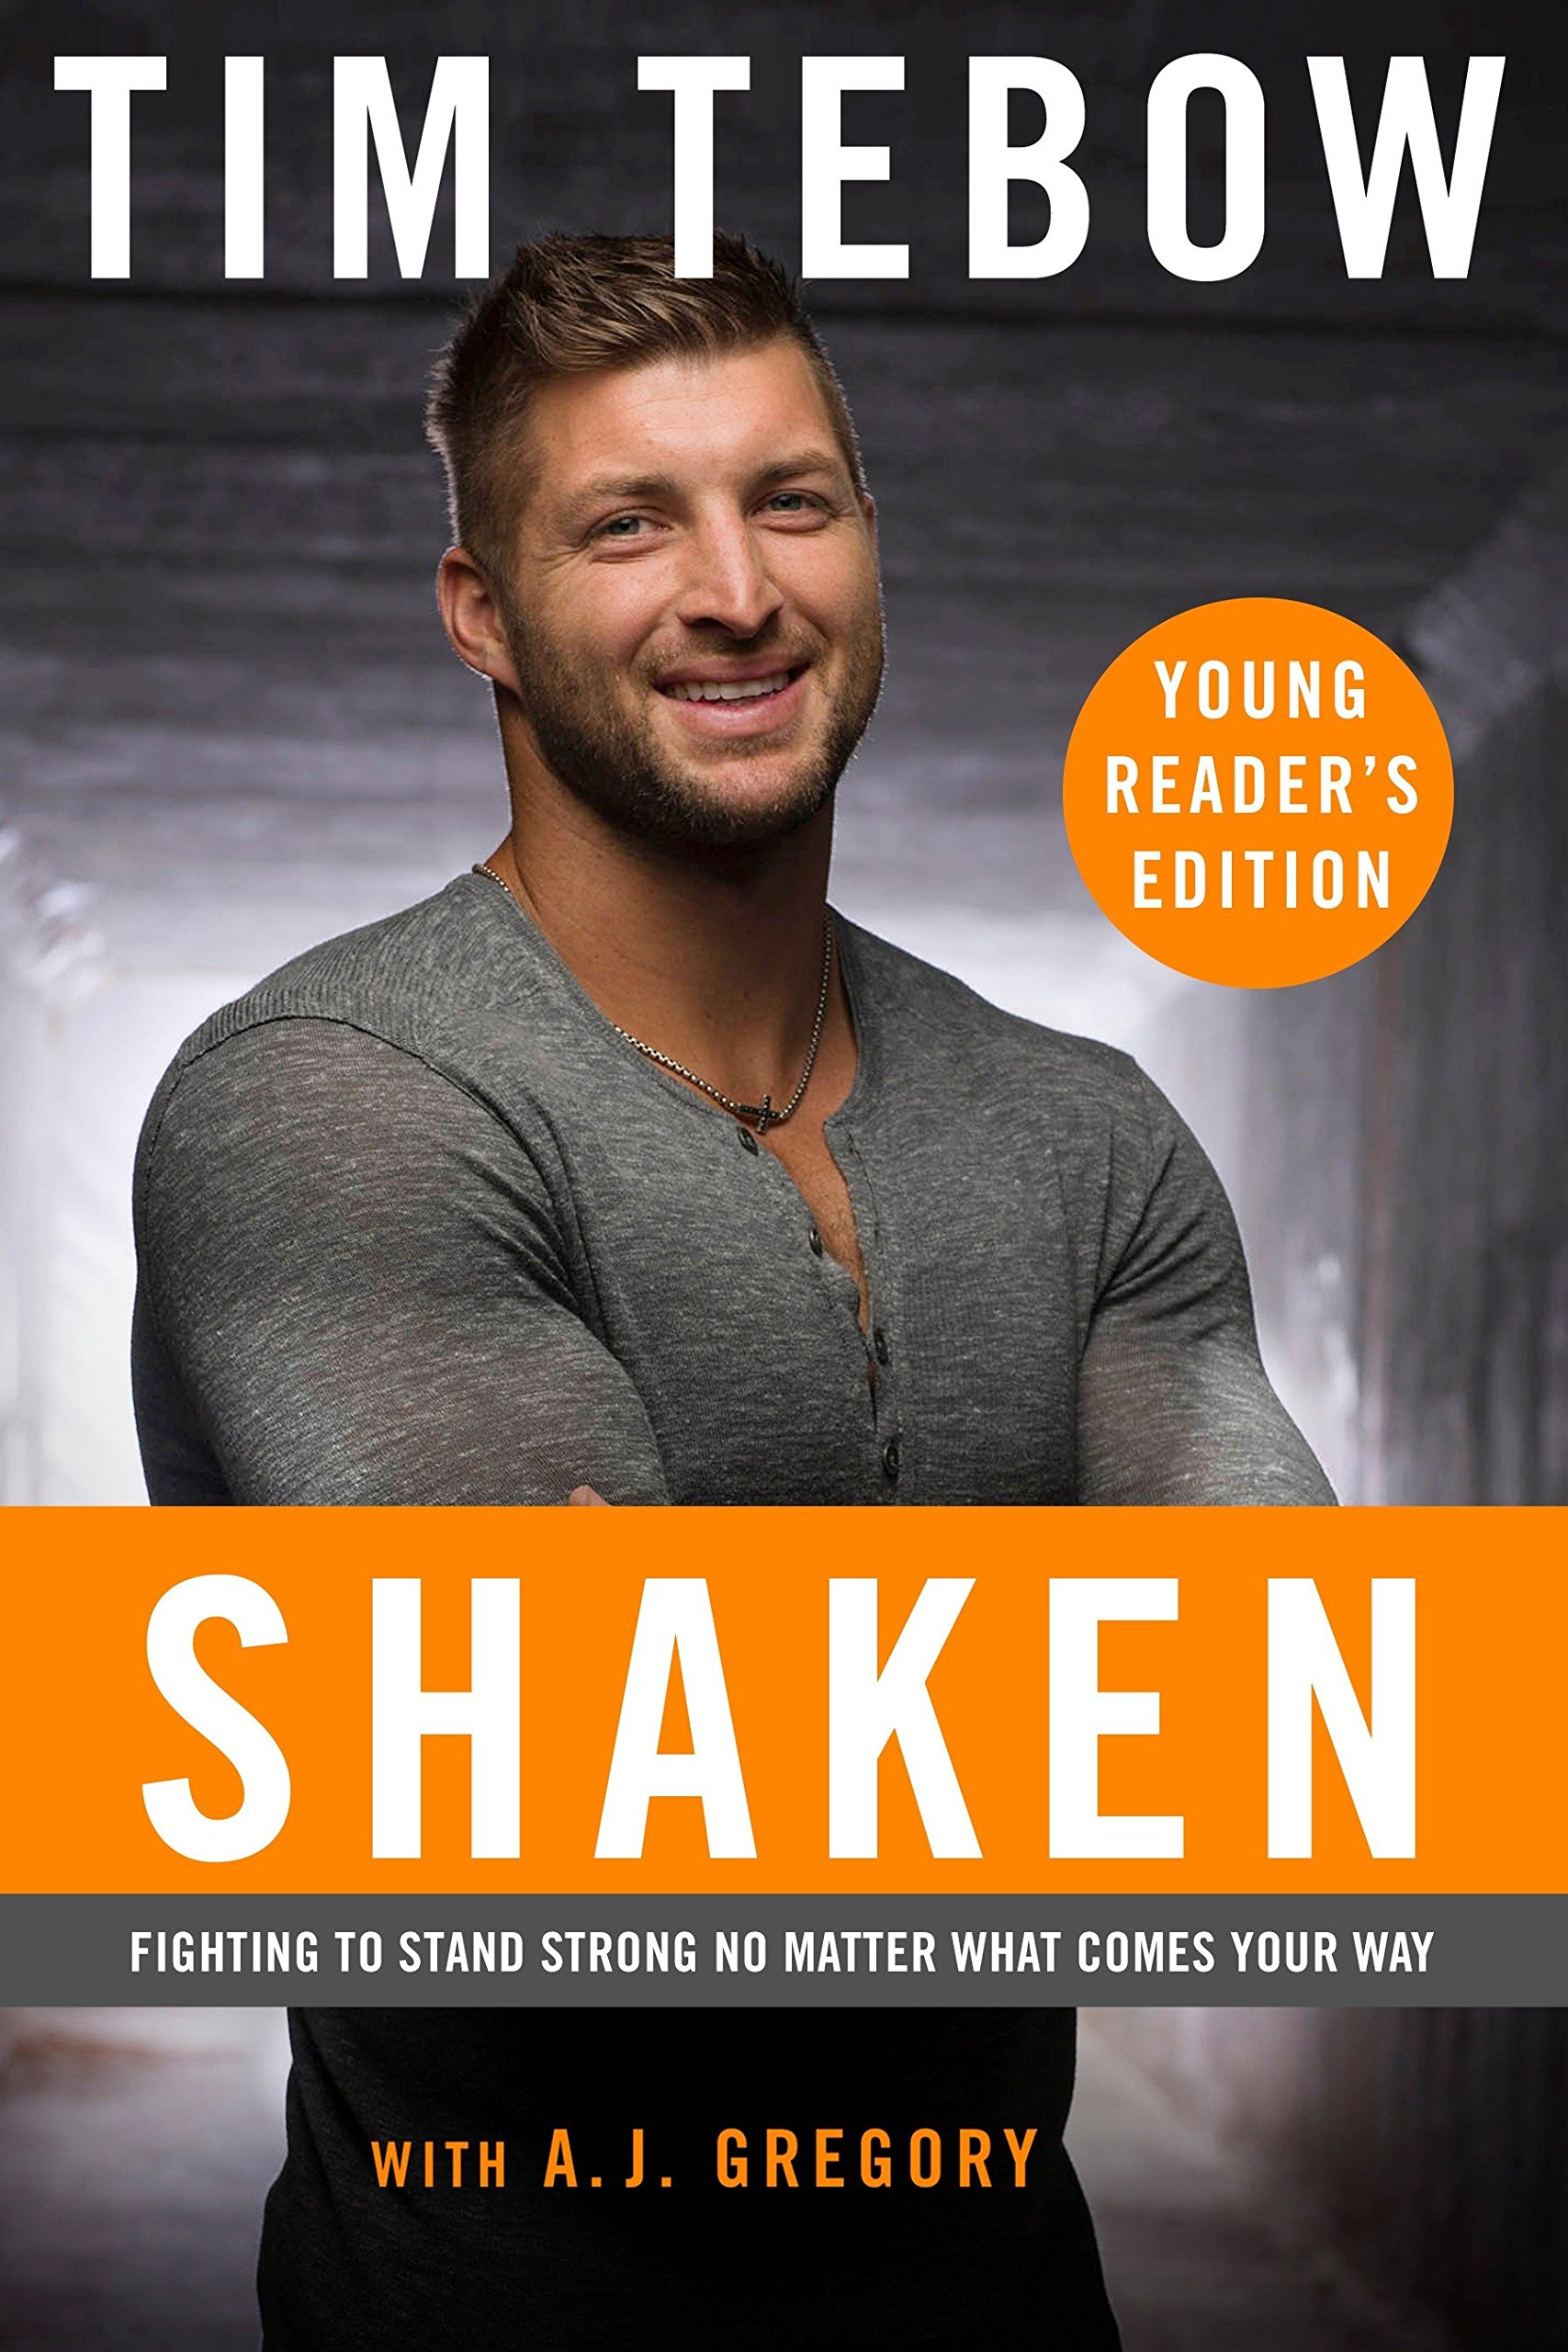 Image result for TIM TEBOW shaken